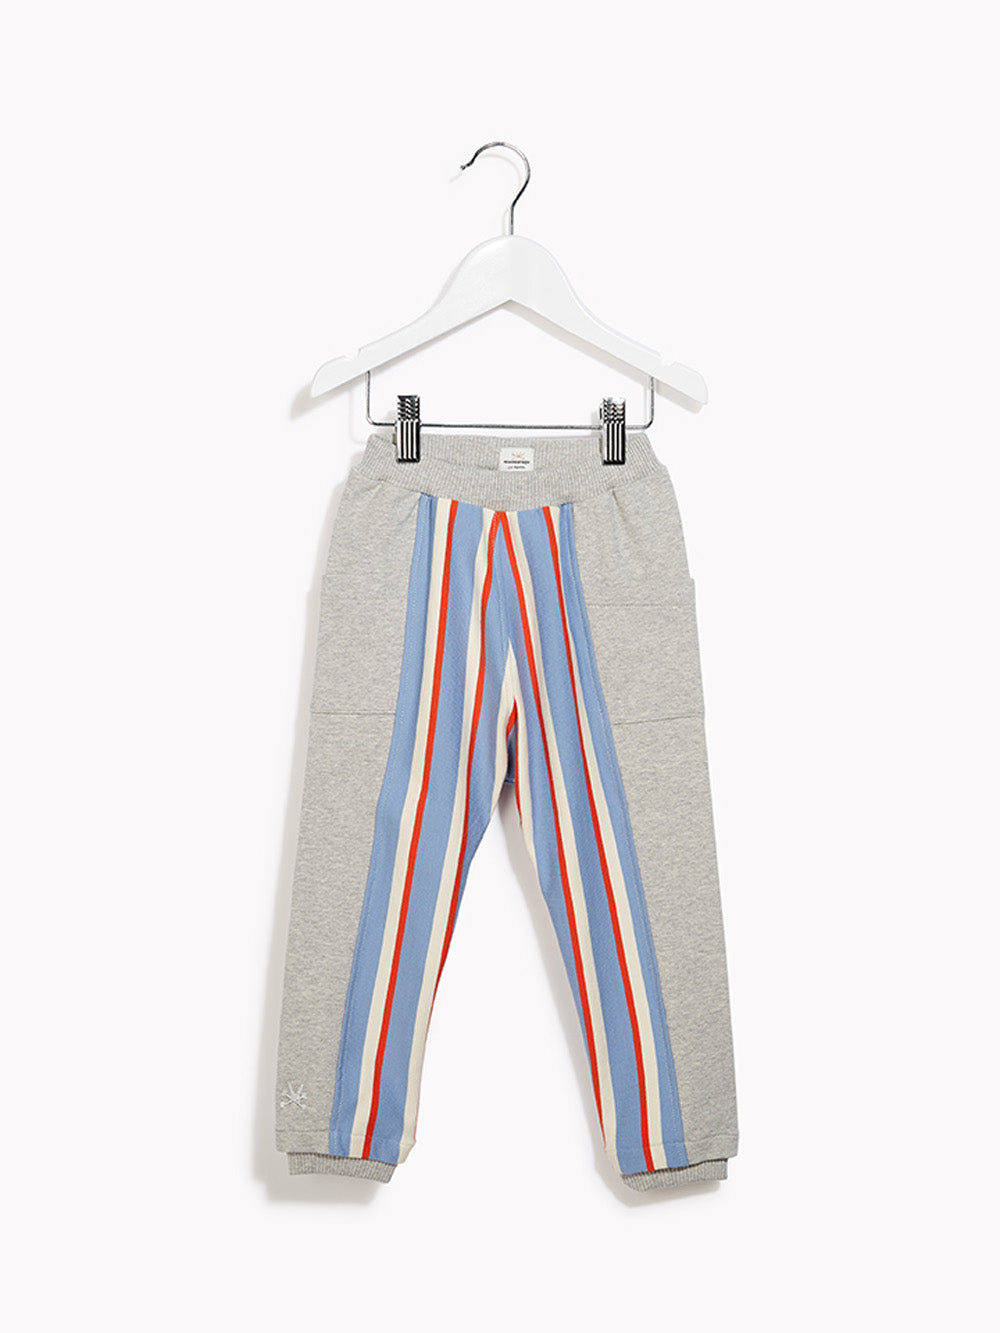 Little Boys Sweat Pants - Toddlers & Crawlers Swank Grey Marl & Collegiate Stripe Trouser Jogging Bottoms